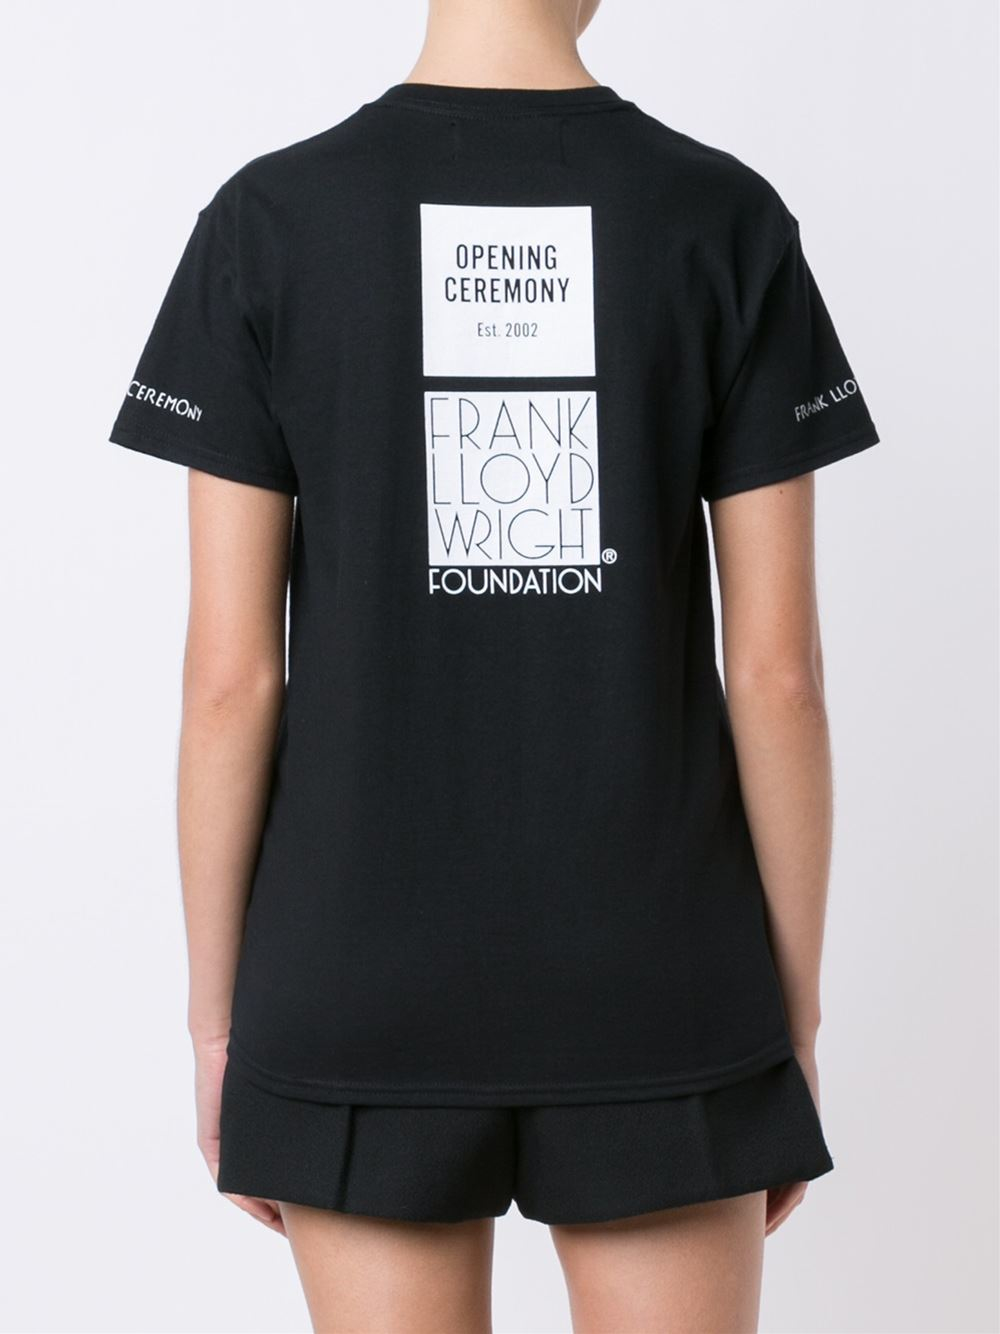 Opening Ceremony Fall 2015: Opening Ceremony Geometric Print T-shirt In Black